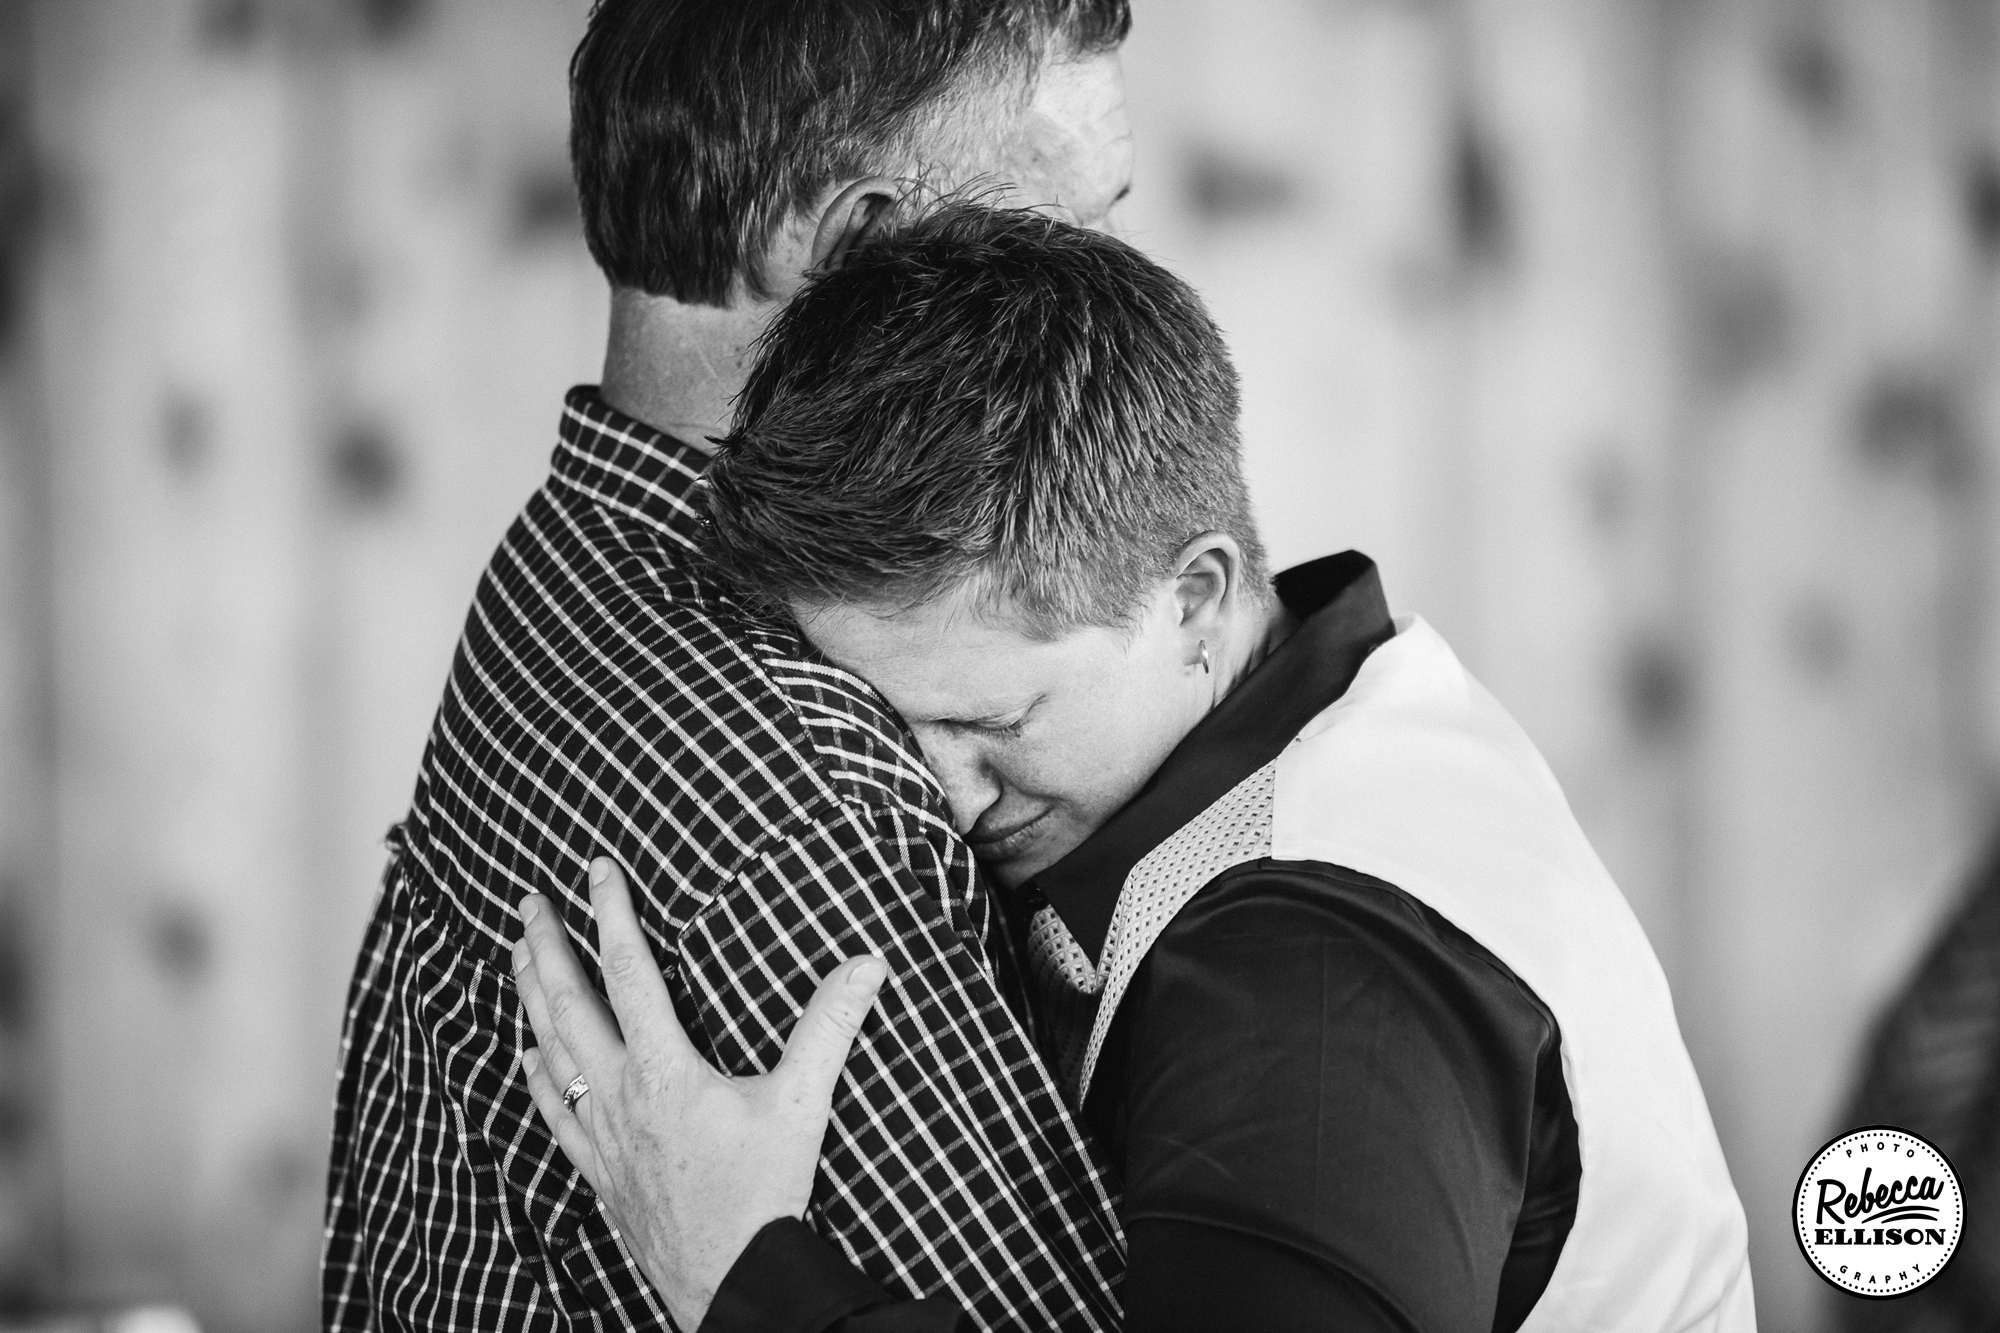 Dancing with dad at a wedding reception a black and white portrait by Rebecca Ellison Photography